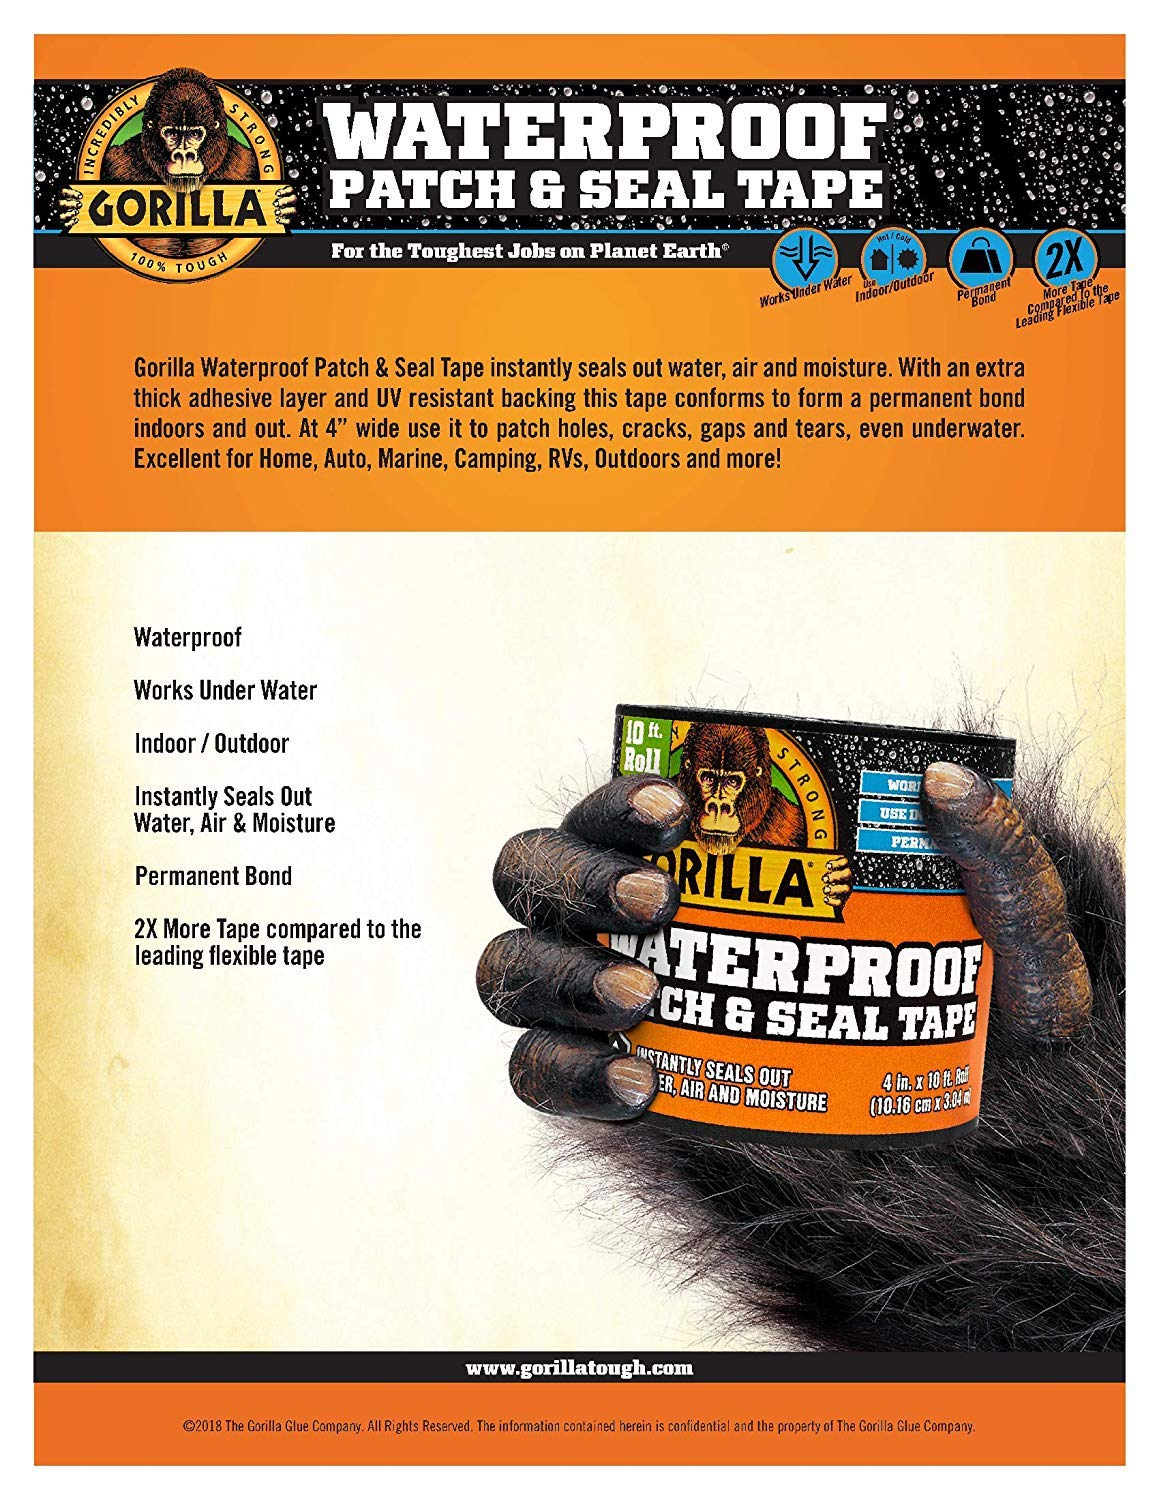 Gorilla 4612502 Waterproof Patch & Seal Tape 4'' x 10' Black, Pack 4 by Gorilla (Image #3)